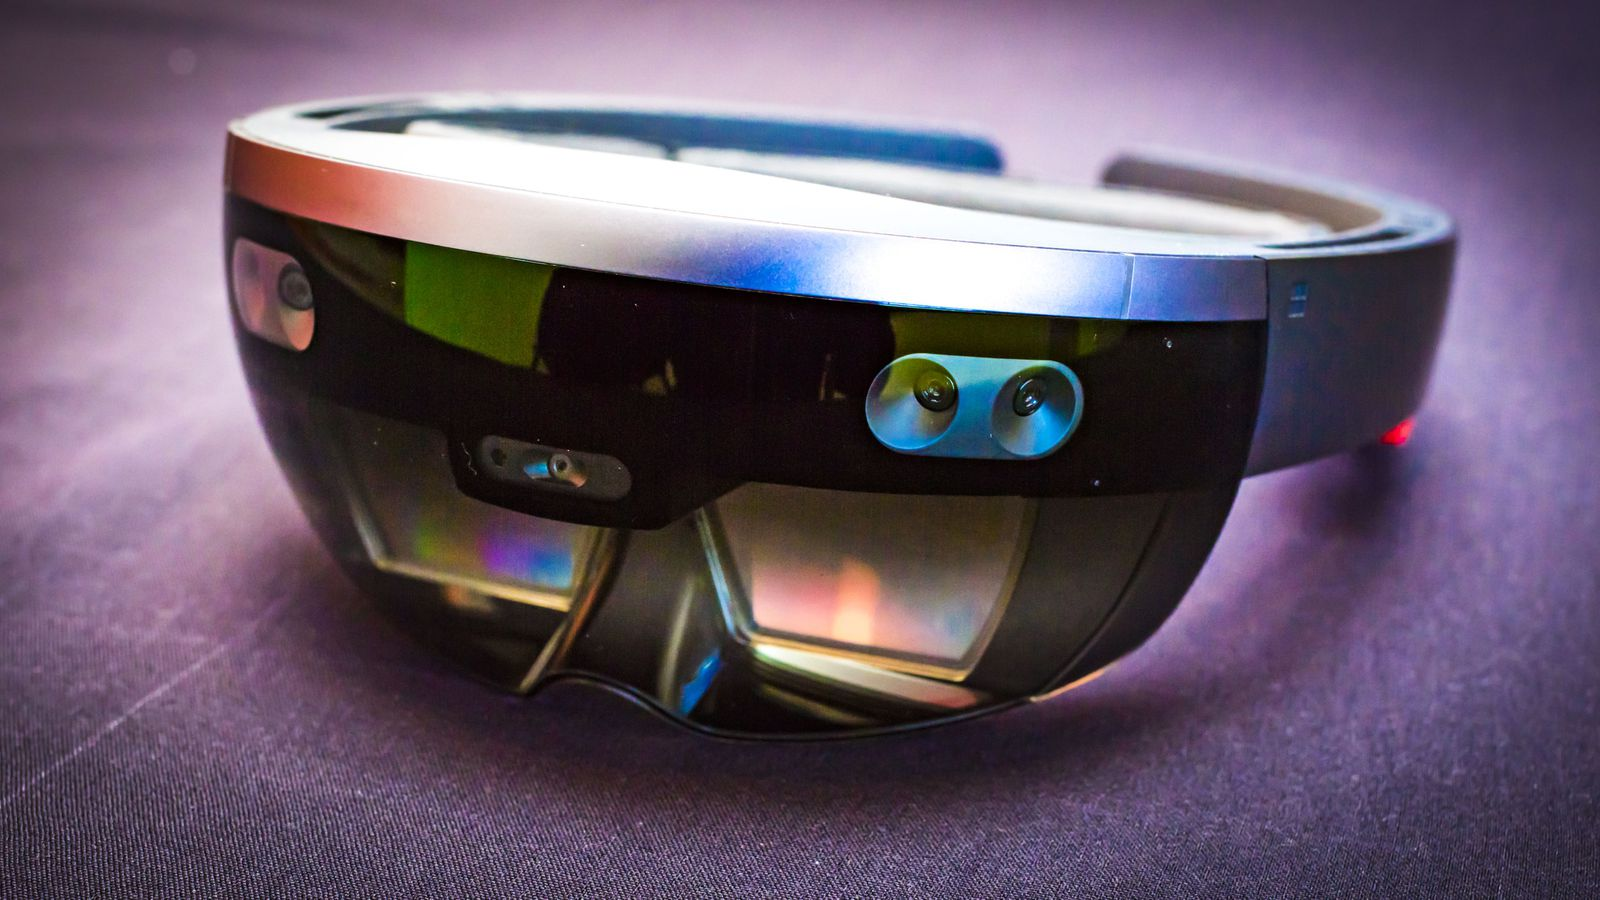 Microsoft's next HoloLens could be powered by Qualcomm's Snapdragon XR1 platform